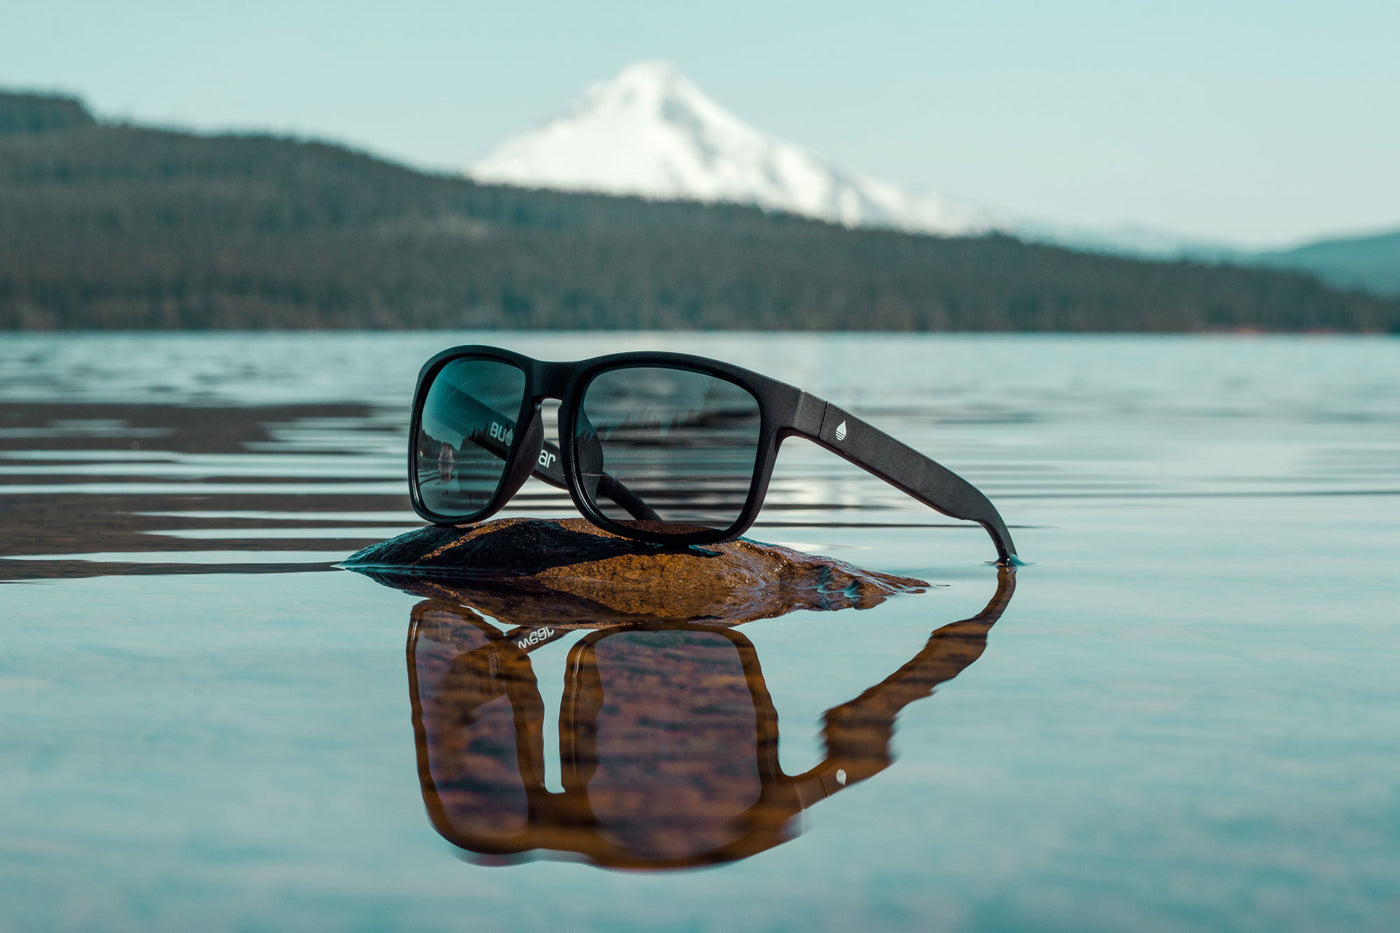 BUOY WEAR's Black Matte Polarized Floating Sunglasses on Timothy Lake, Oregon with Mount Hood in the background.